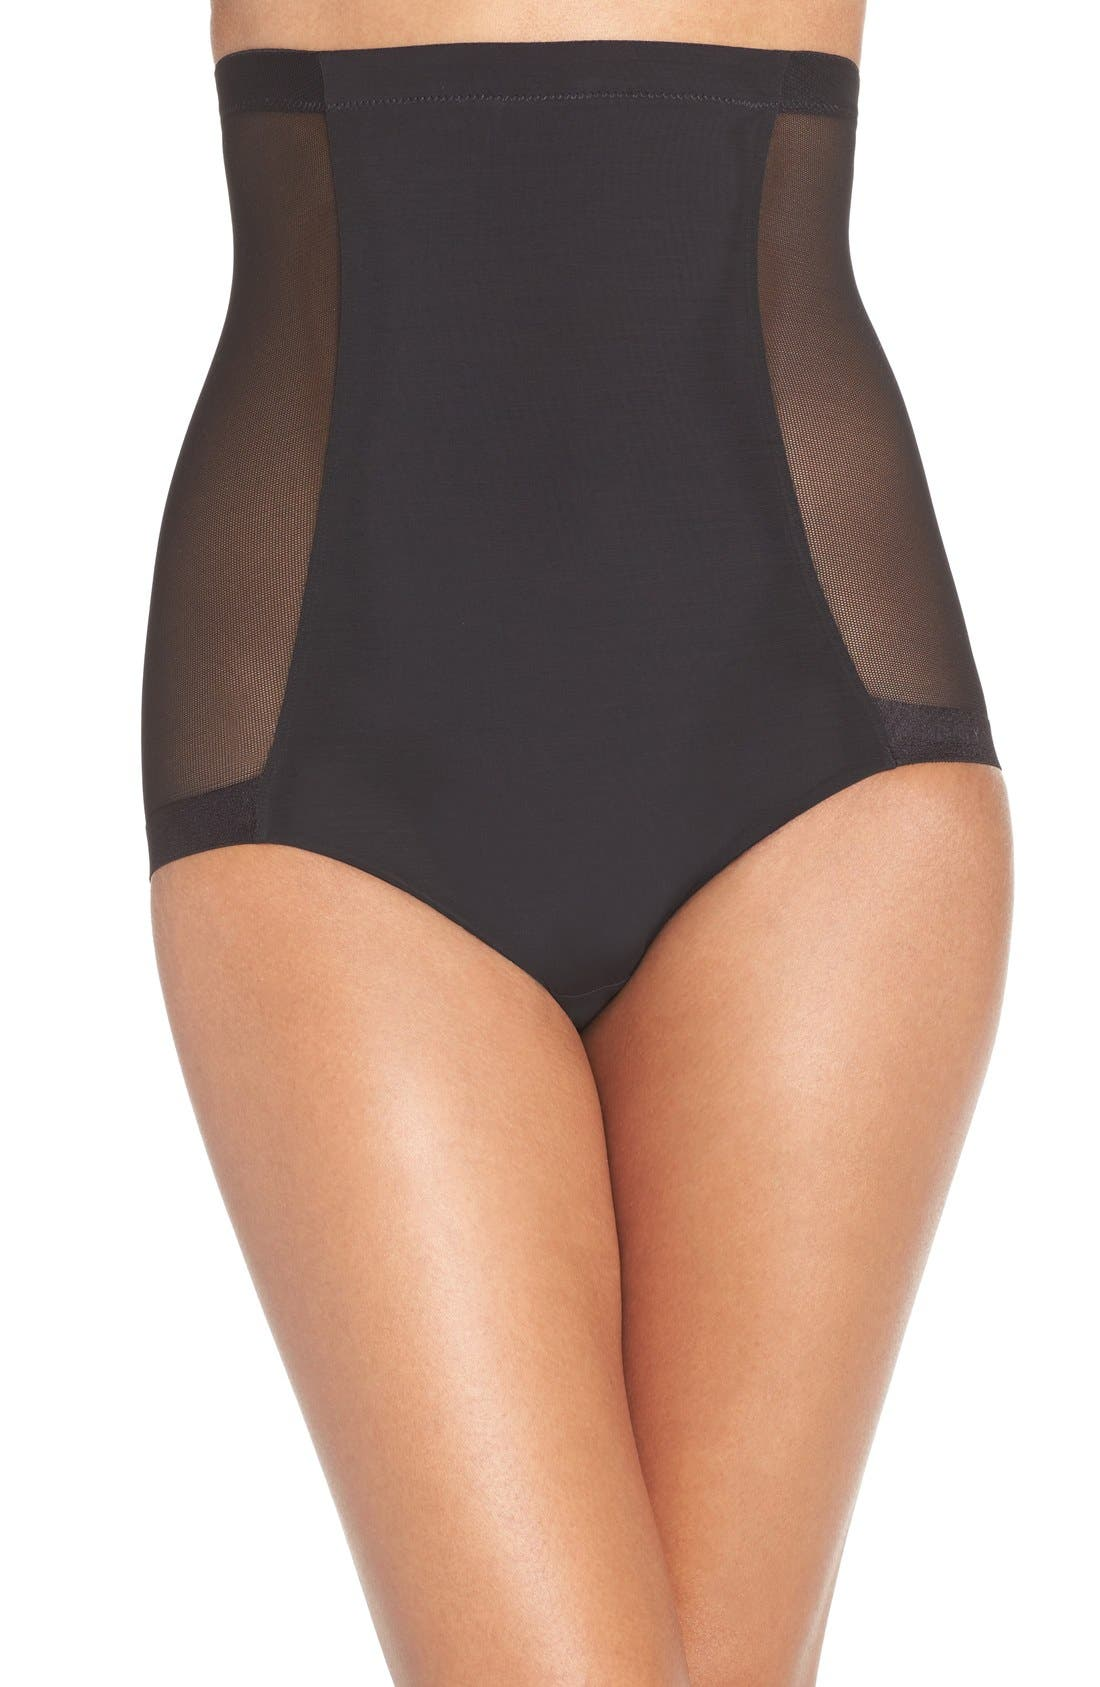 DKNY Modern Lights Smoothing Briefs